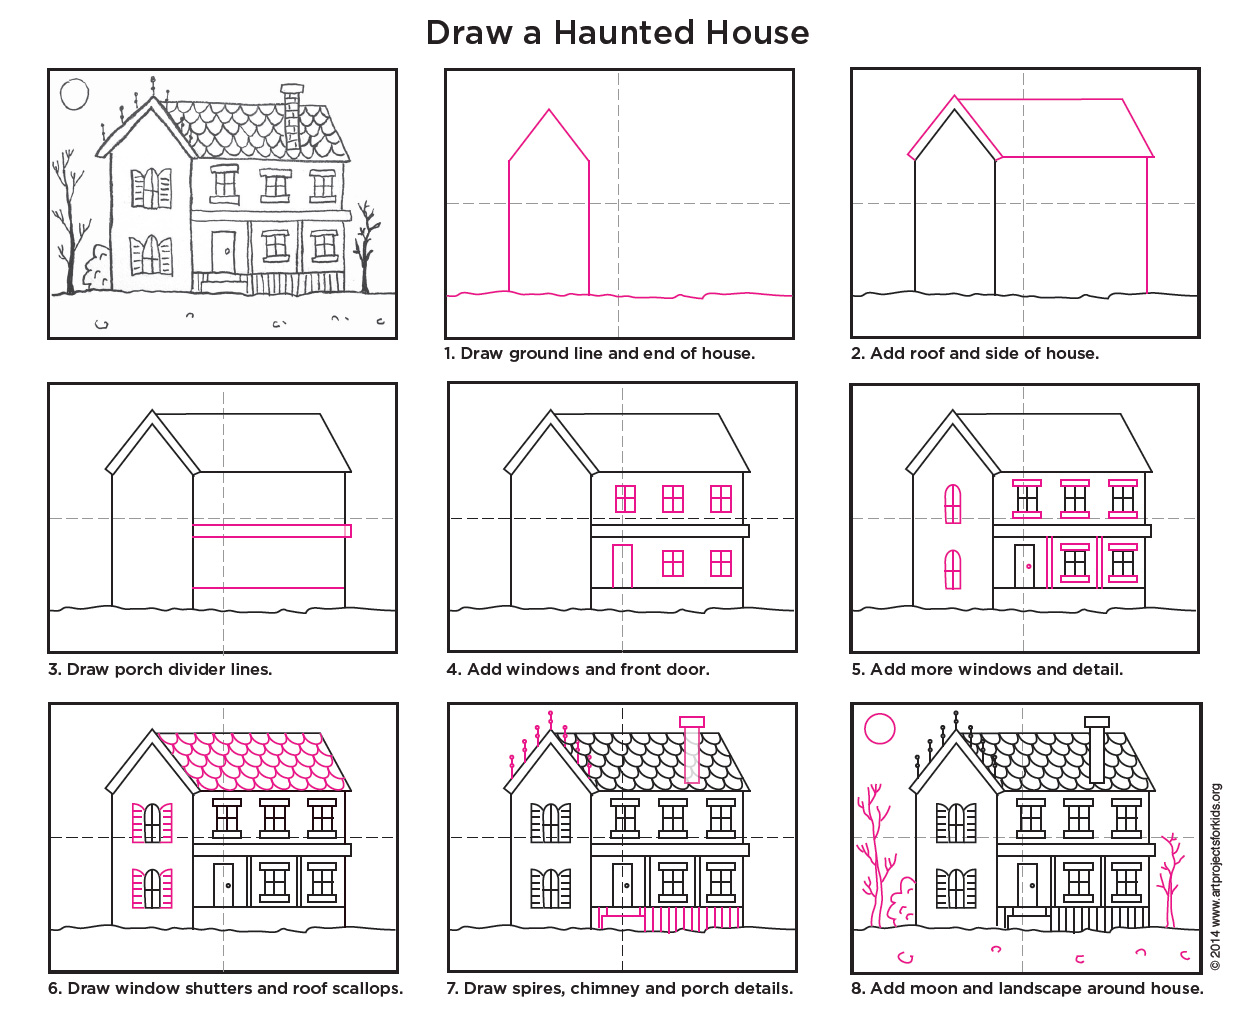 Drawn haunted house step by step Haunted Draw Art Haunted for